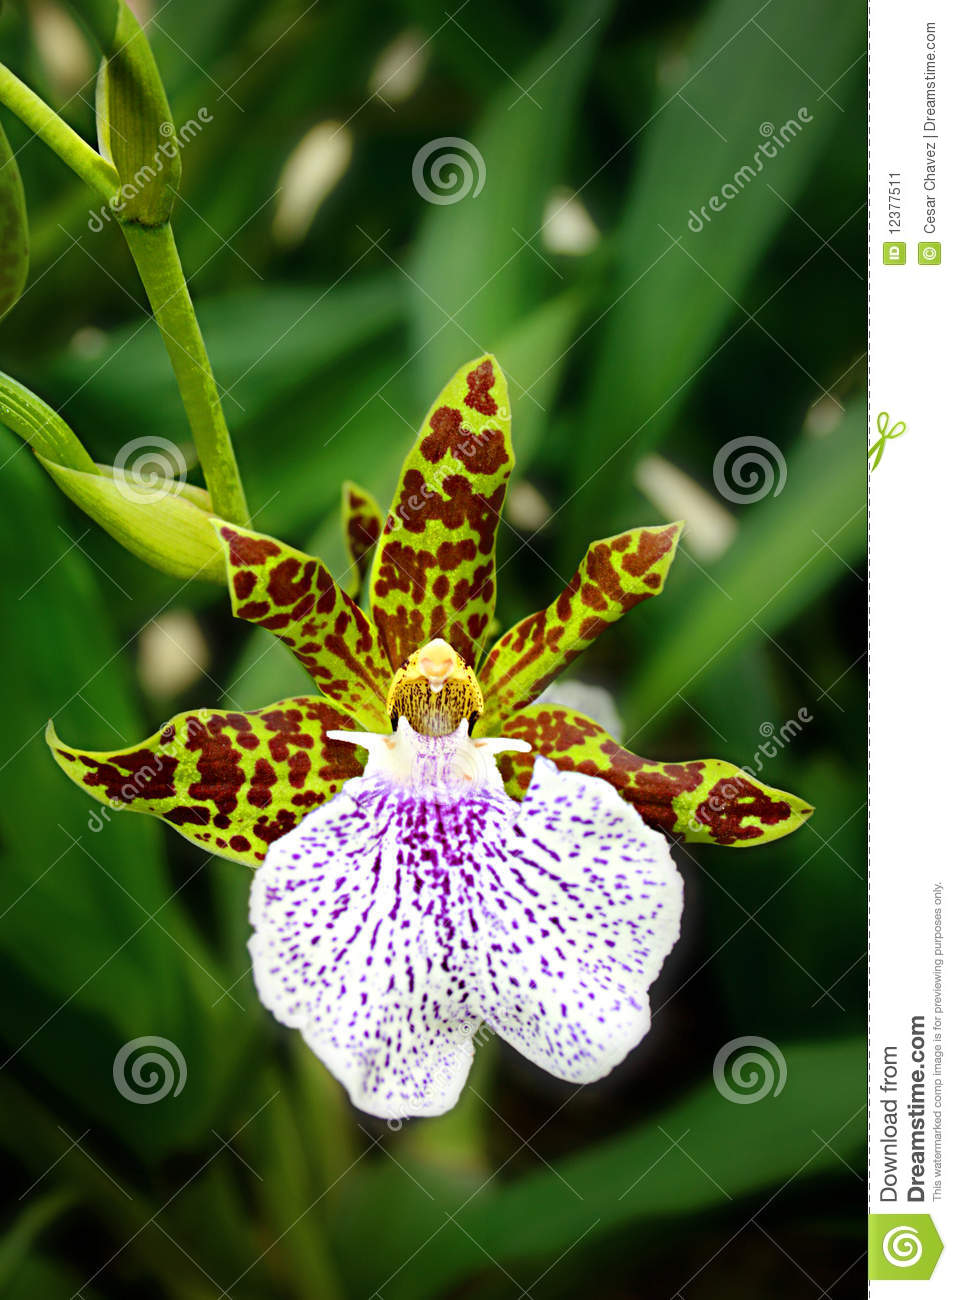 Leopard Orchid clipart #20, Download drawings